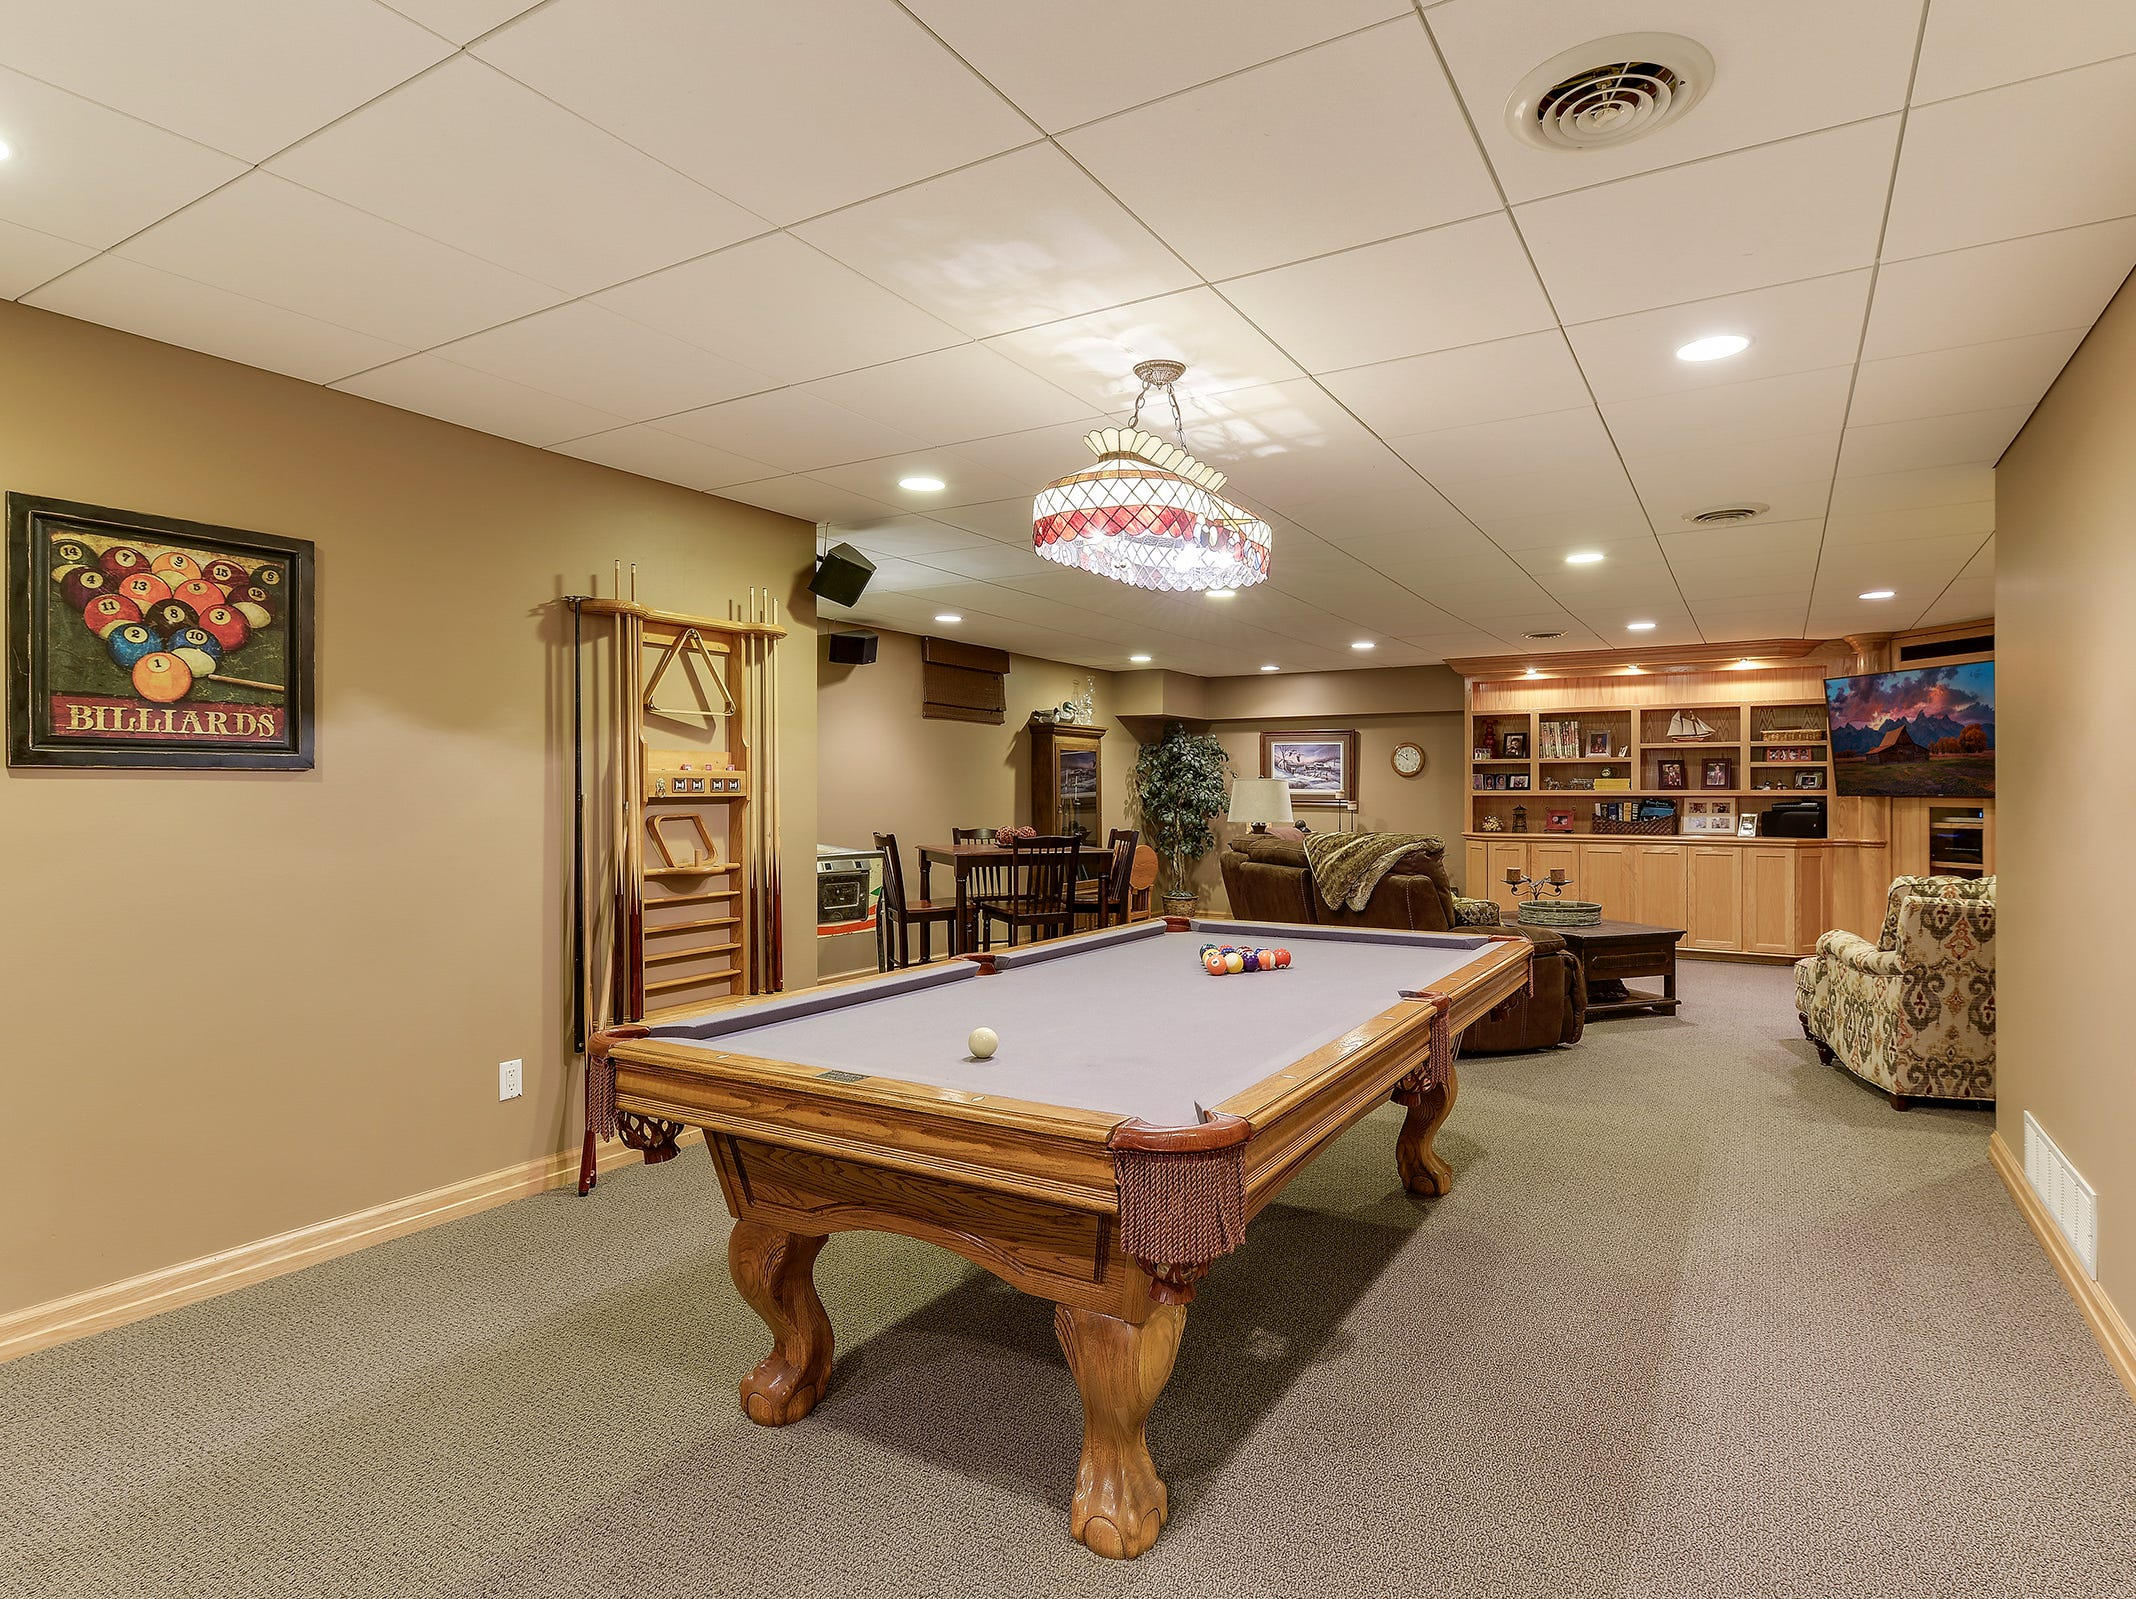 The lower level features a large family room with plenty of built-in bookshelves and storage, a billiards area and a new wet bar.